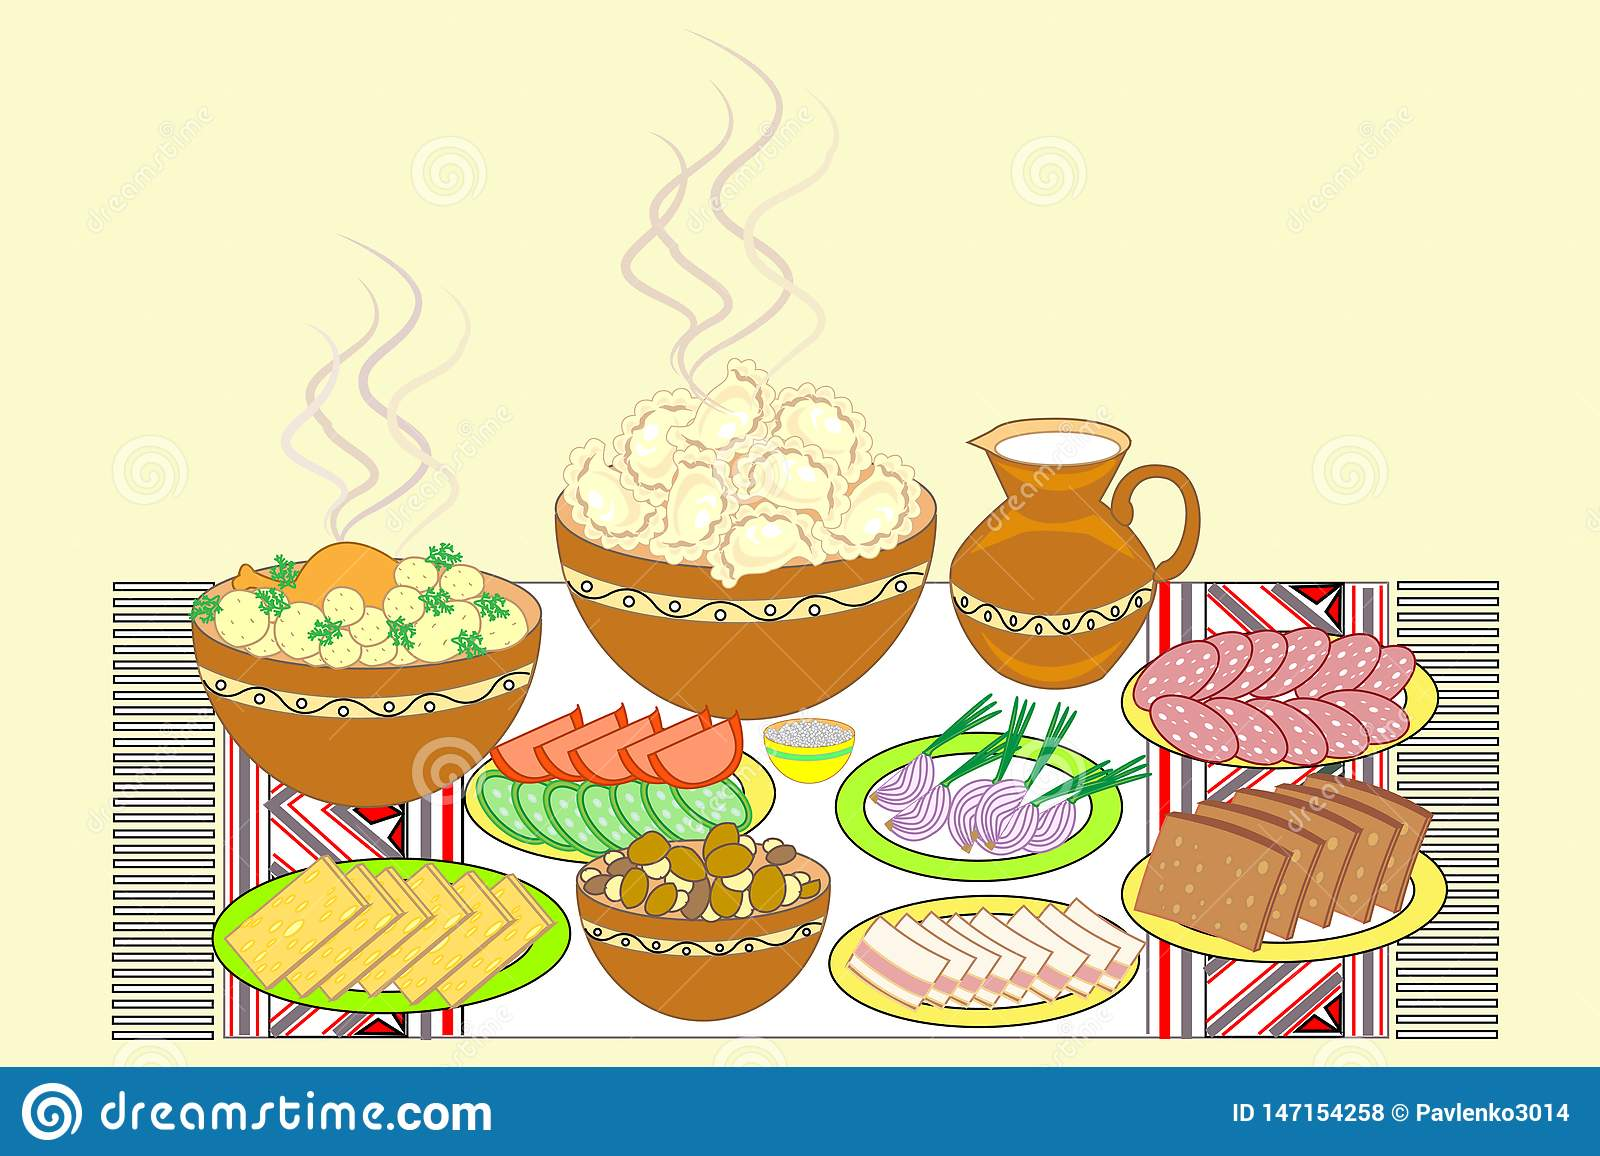 Festive table set. Ukrainian national dishes dumplings, bread, lard, meat, vegetables. Tasty dishes are placed on an embroidered